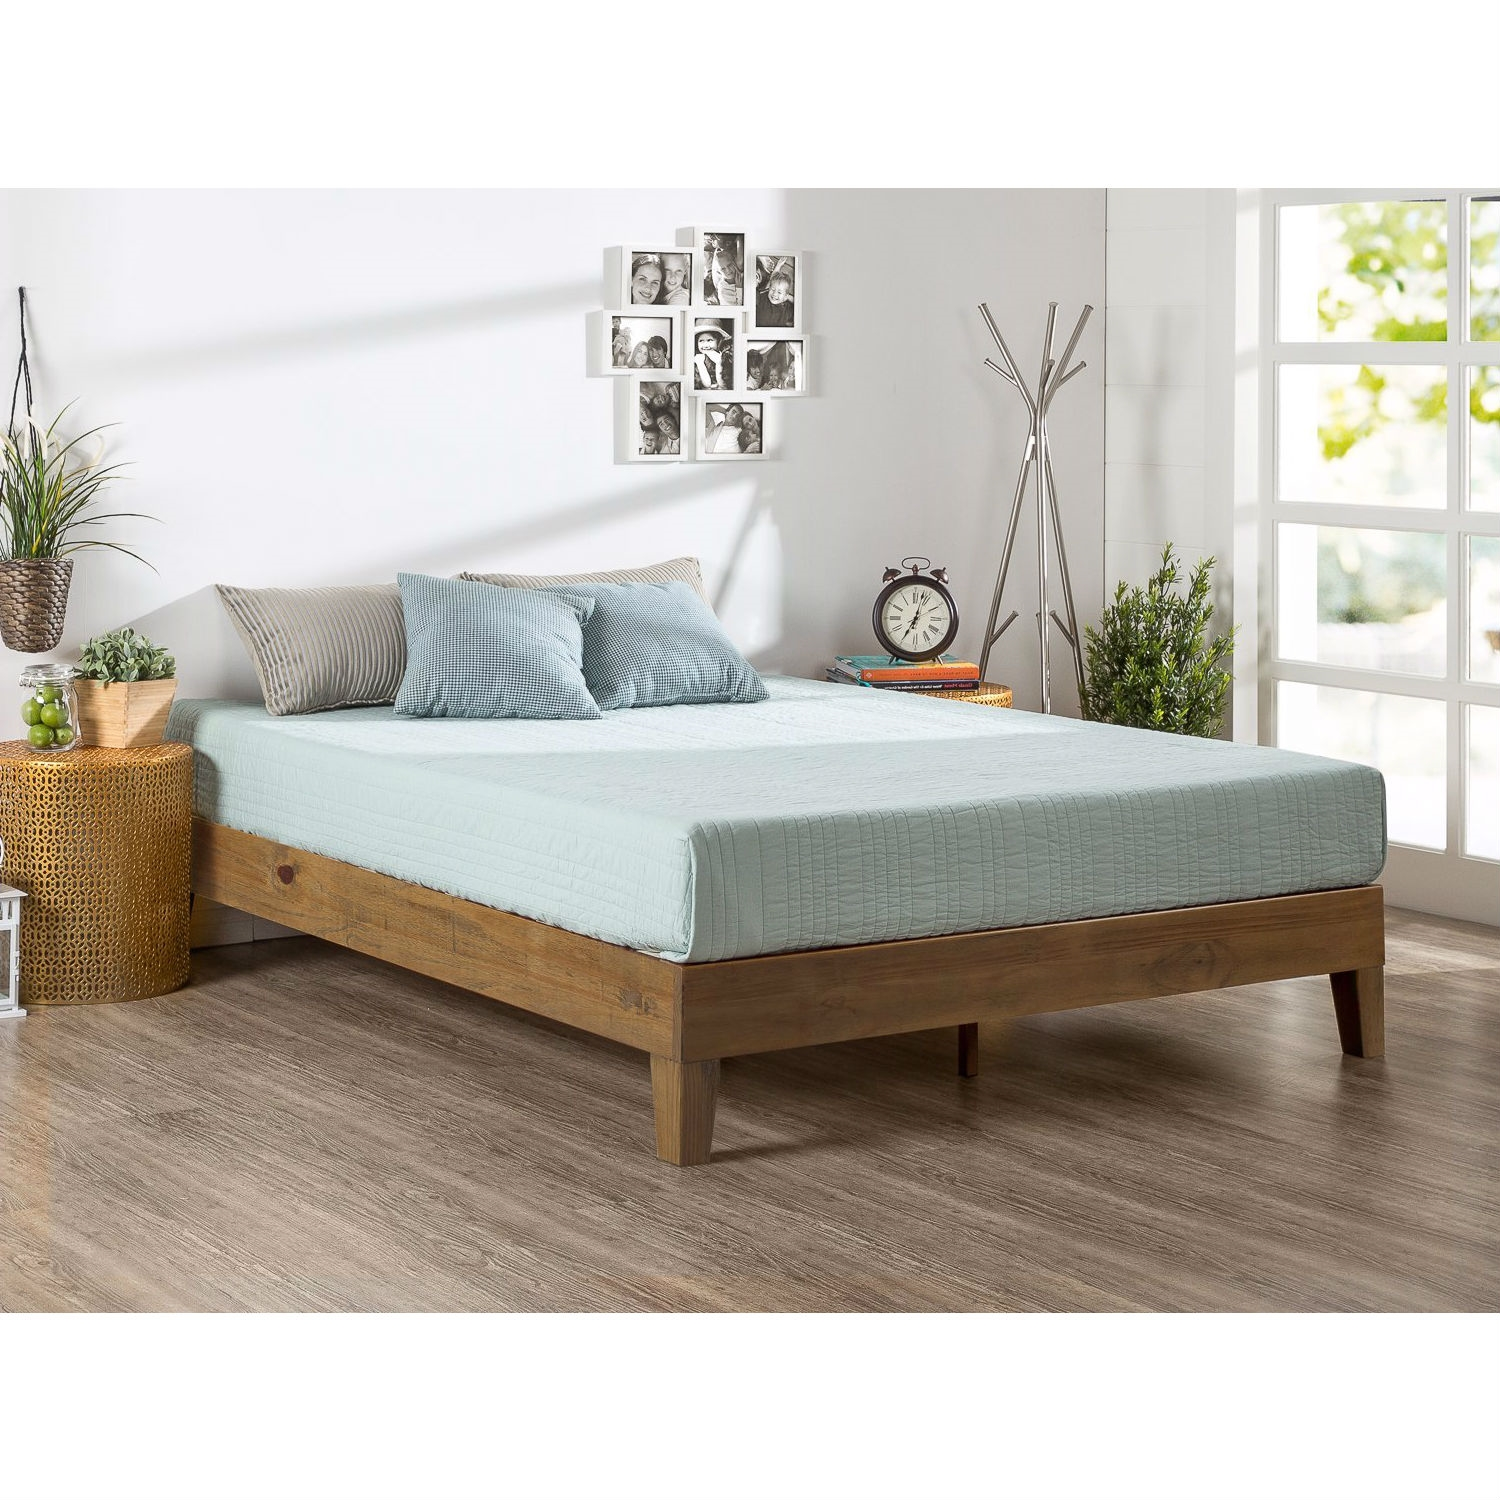 Twin Size Solid Wood Platform Bed Frame In Pine Finish Fastfurnishings Com